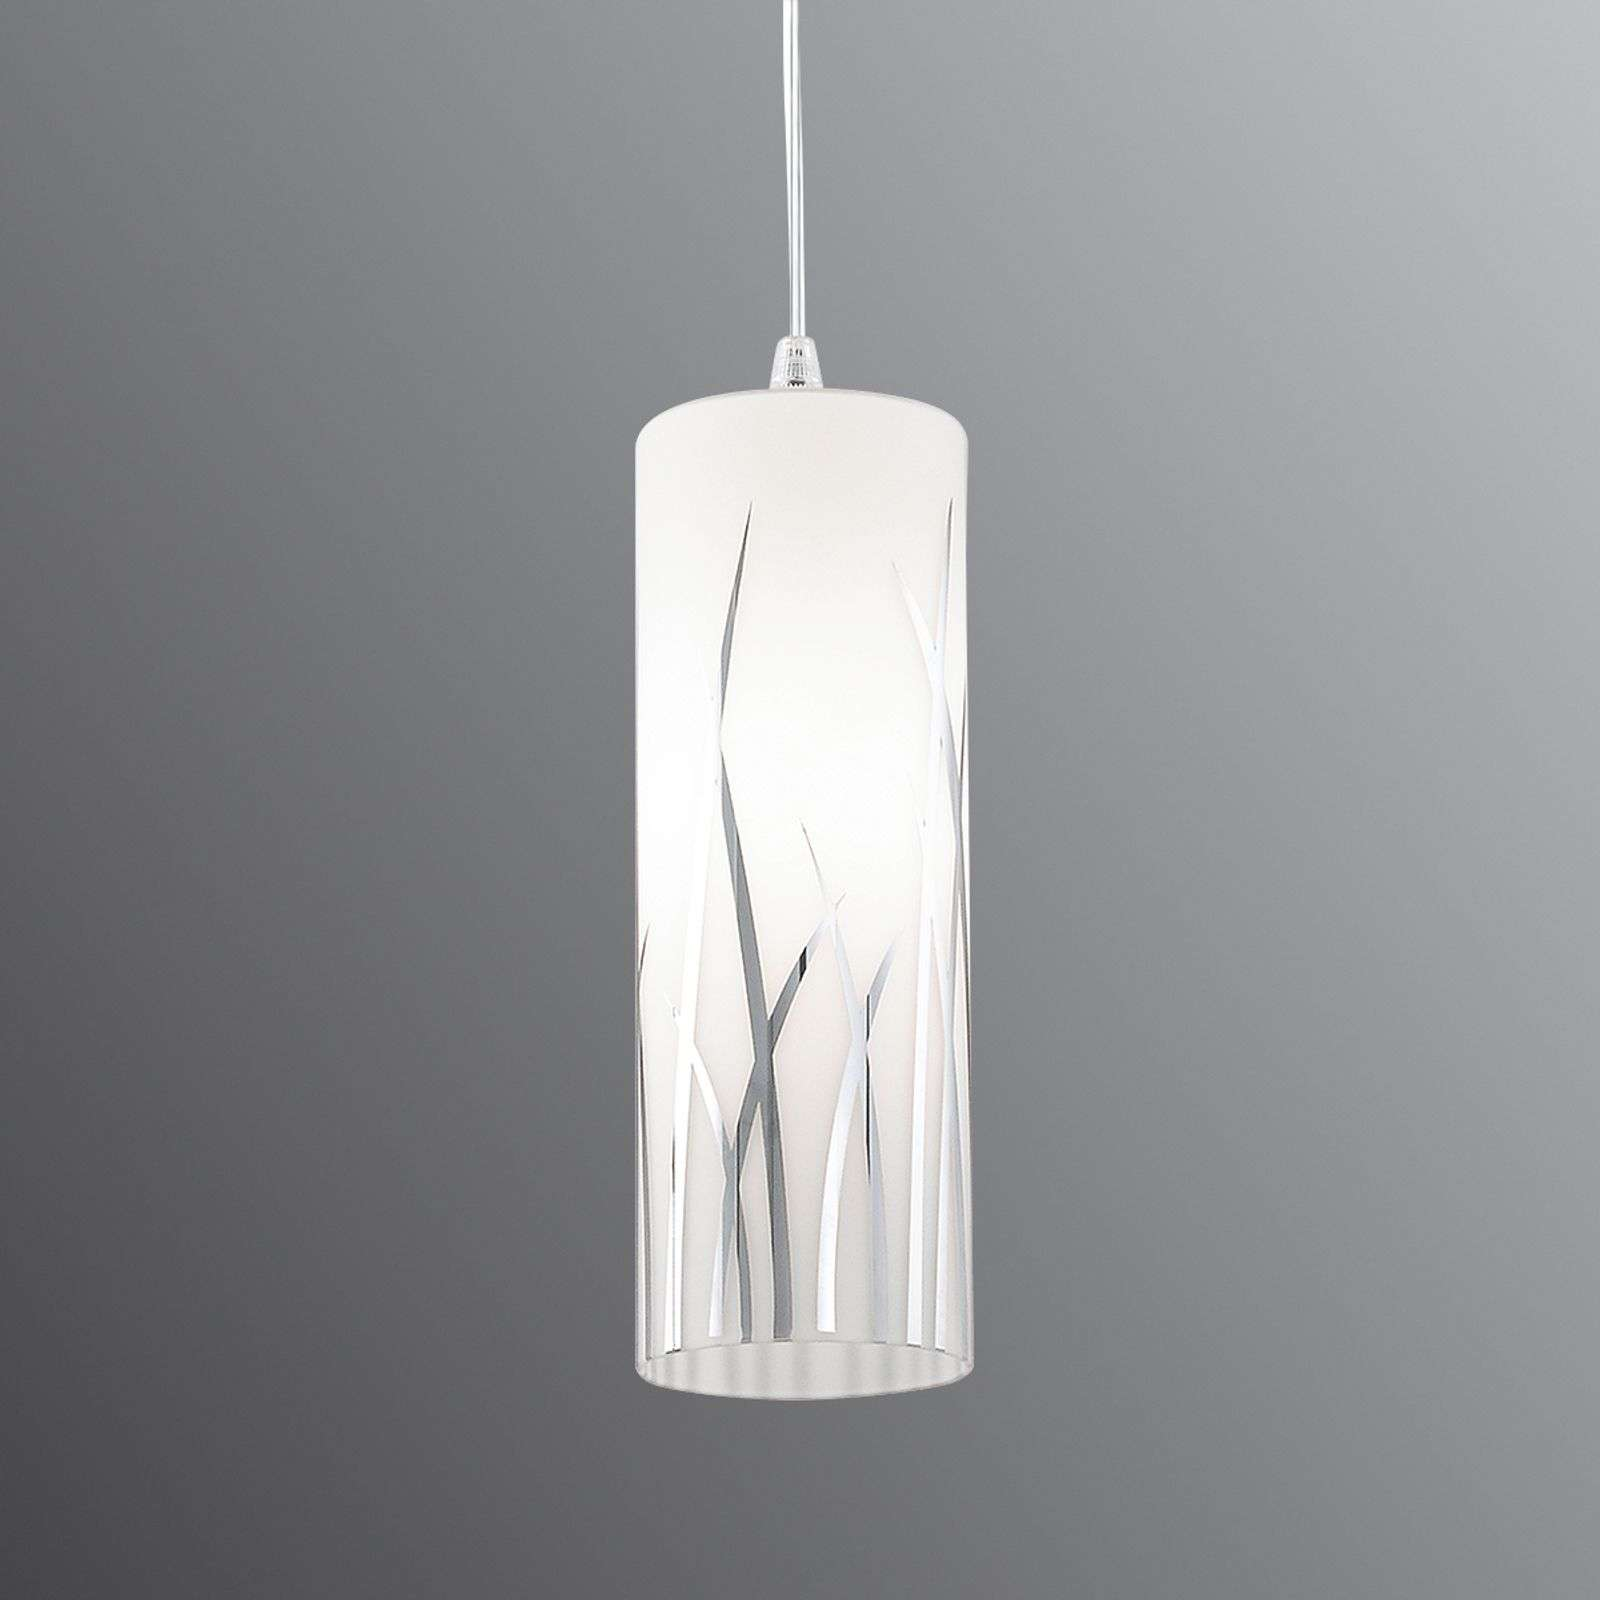 Rivato - decoratieve design hanglamp